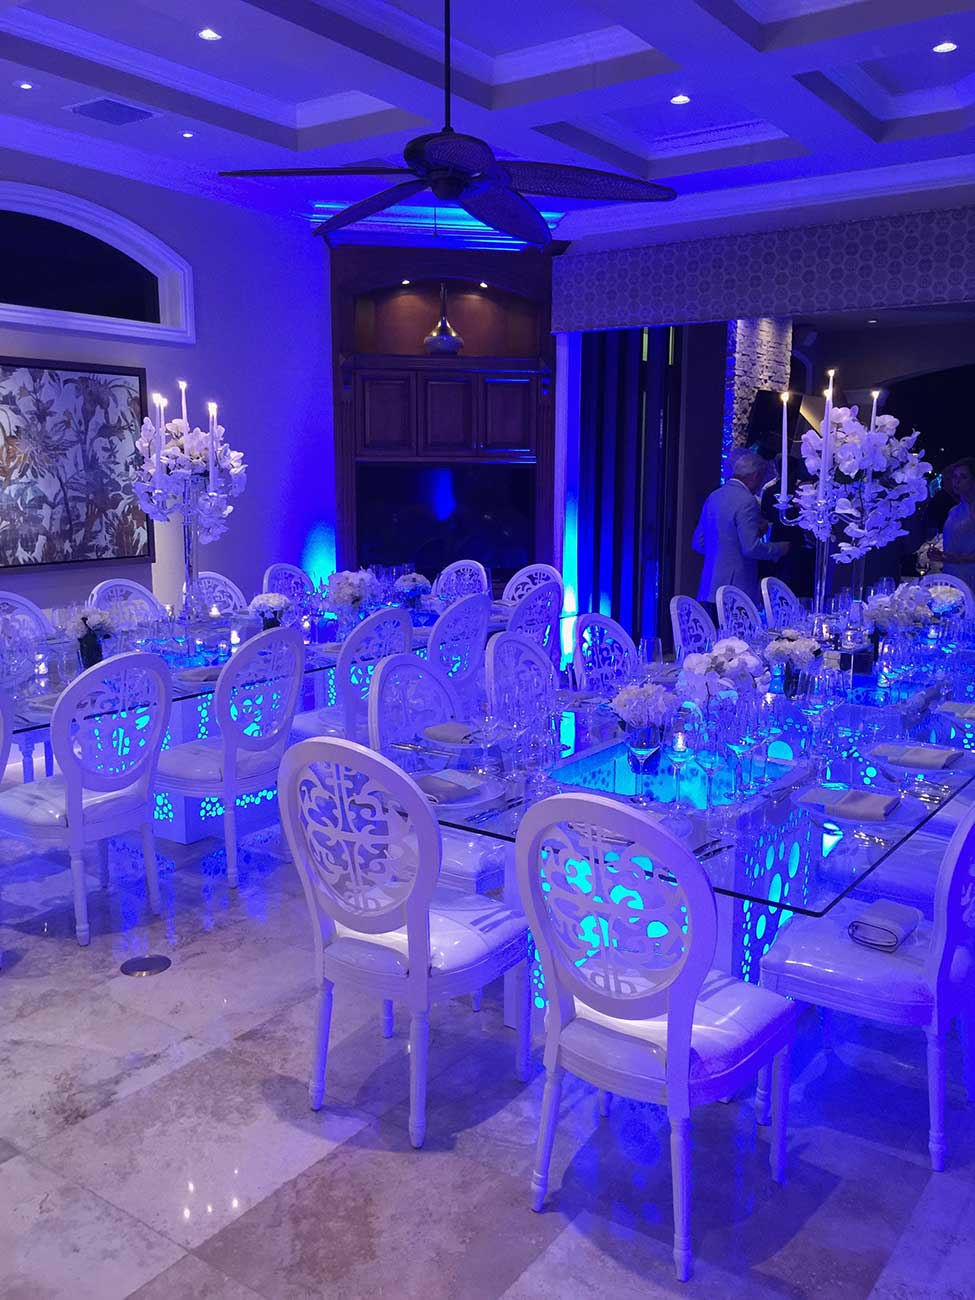 Tabletop design for 2 long glass tables inside with blue uplighting set in a modern tone